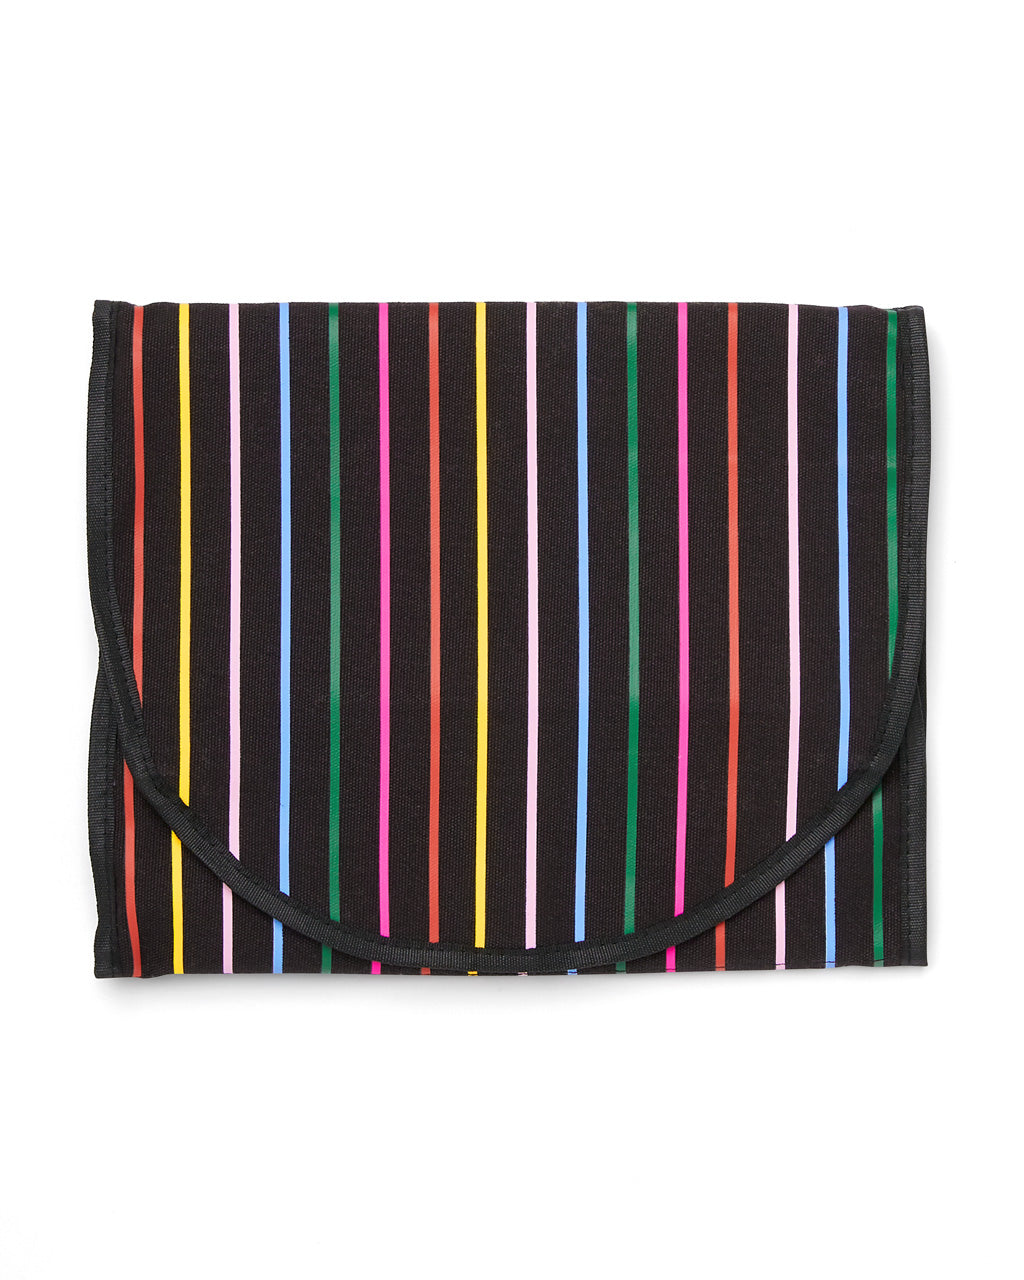 Black travel organizer in a vertical rainbow stripe.